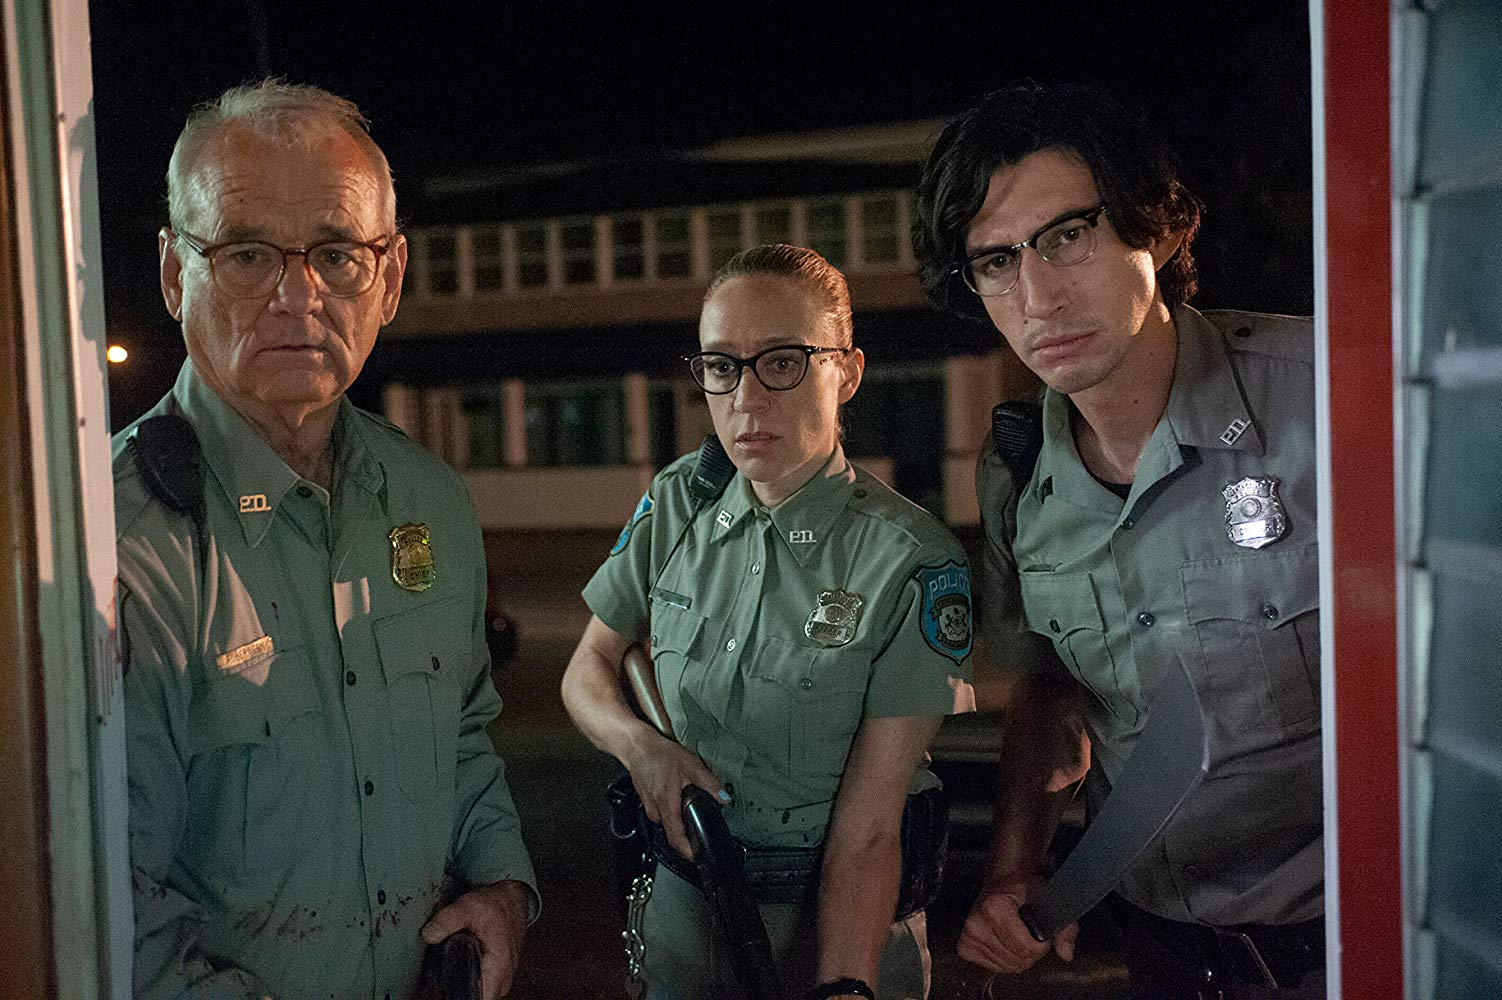 (l to r) Sheriff Bill Murray and deputies Chloe Sevigny and Adam Driver in The Dead Don't Die (2019)